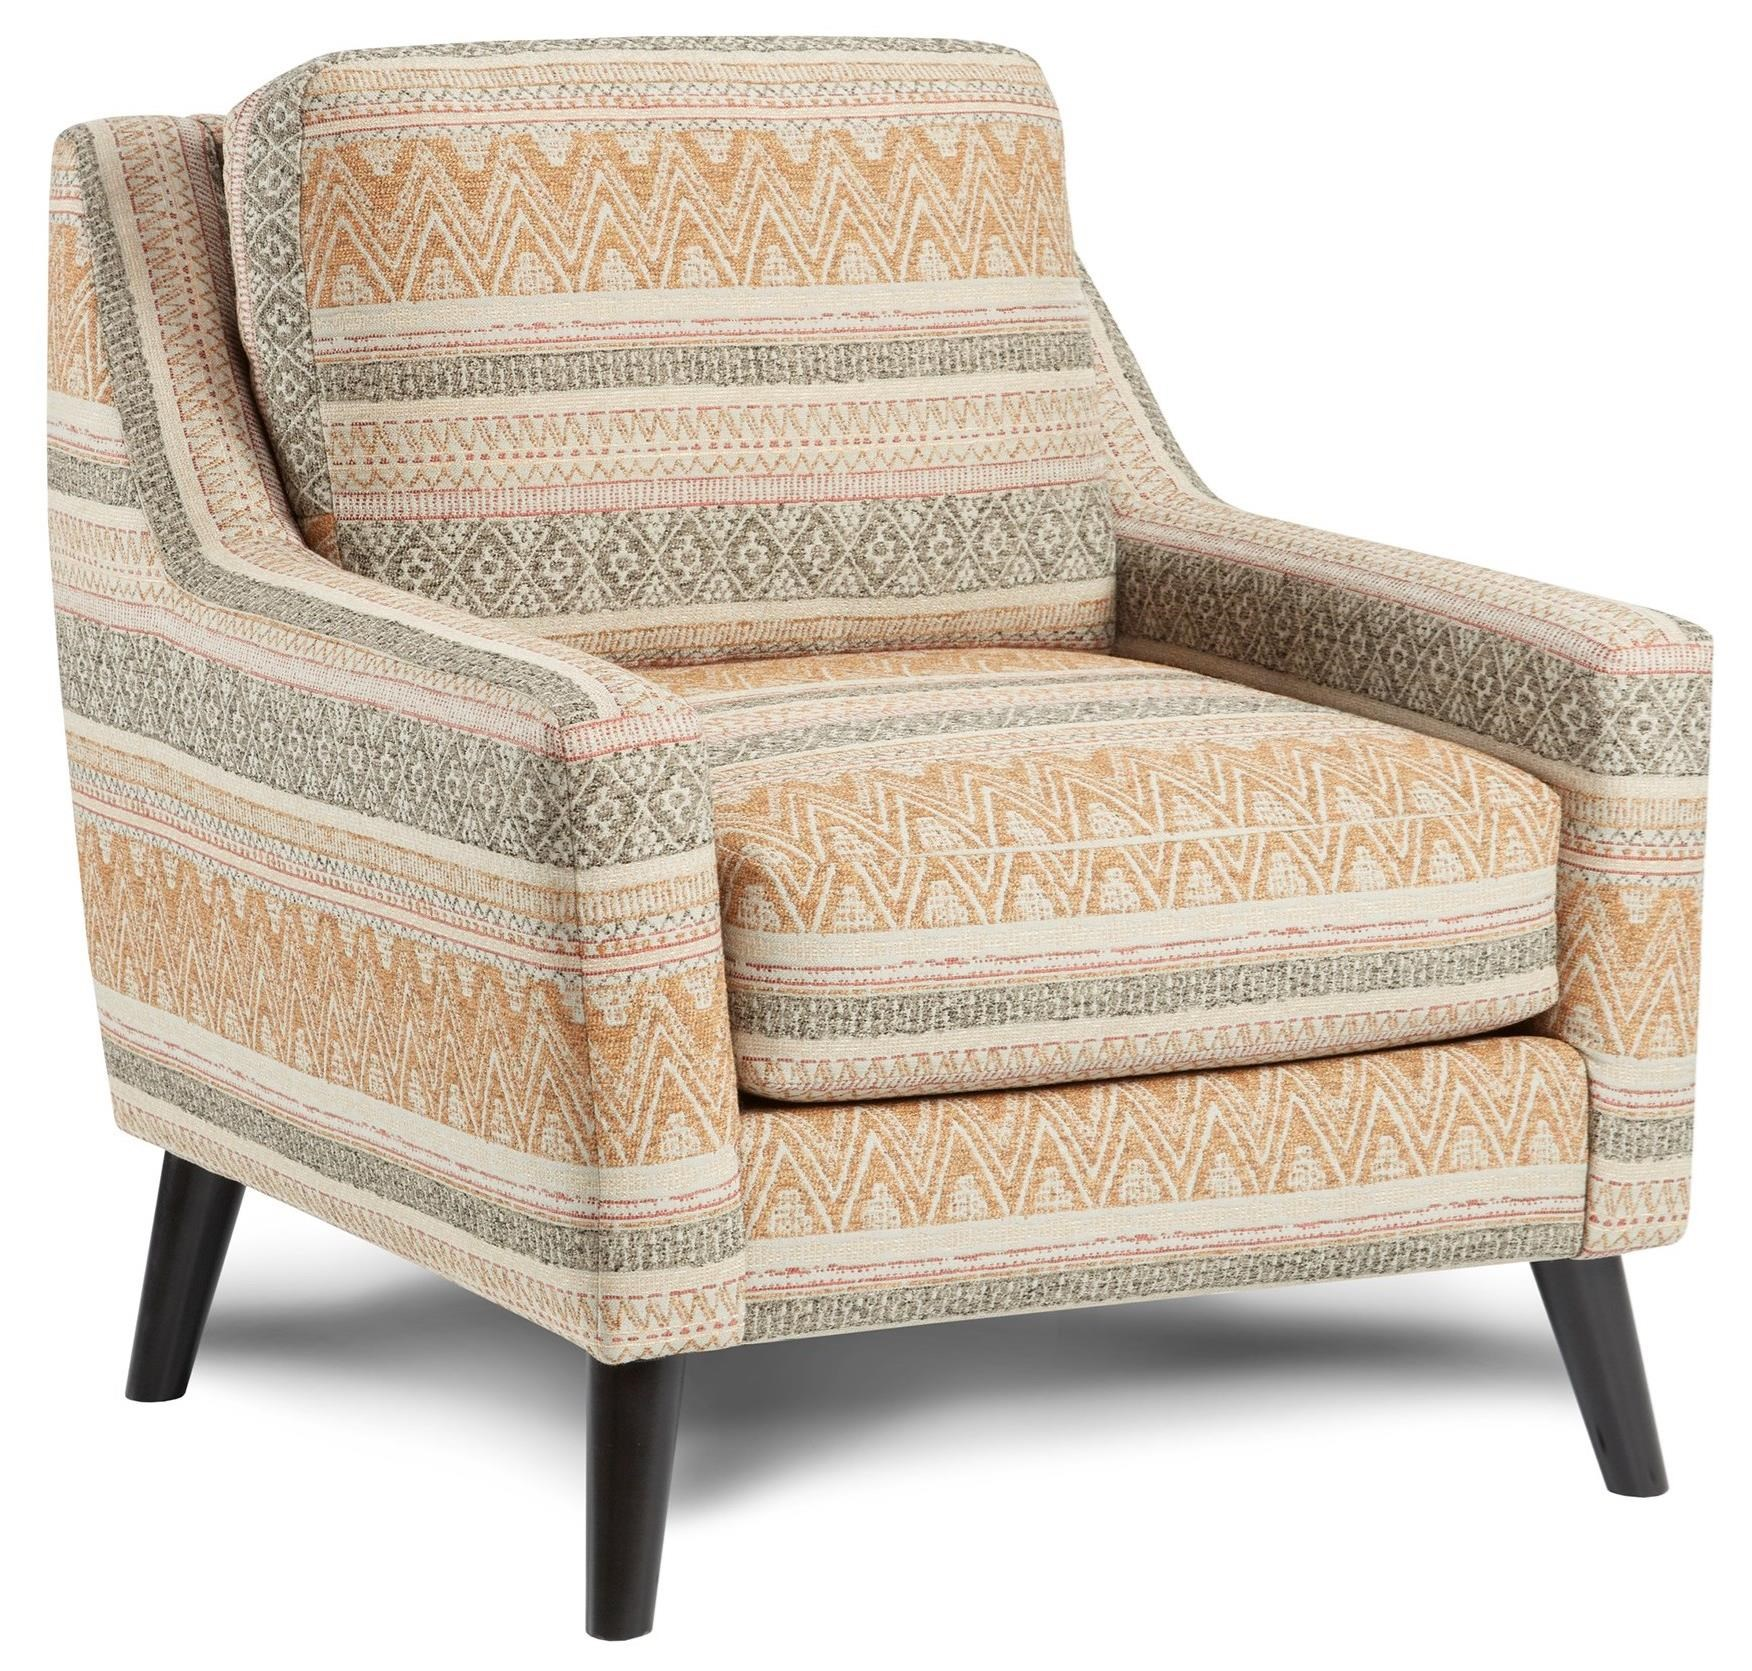 290 Upholstered Chair by Fusion Furniture at Miller Waldrop Furniture and Decor